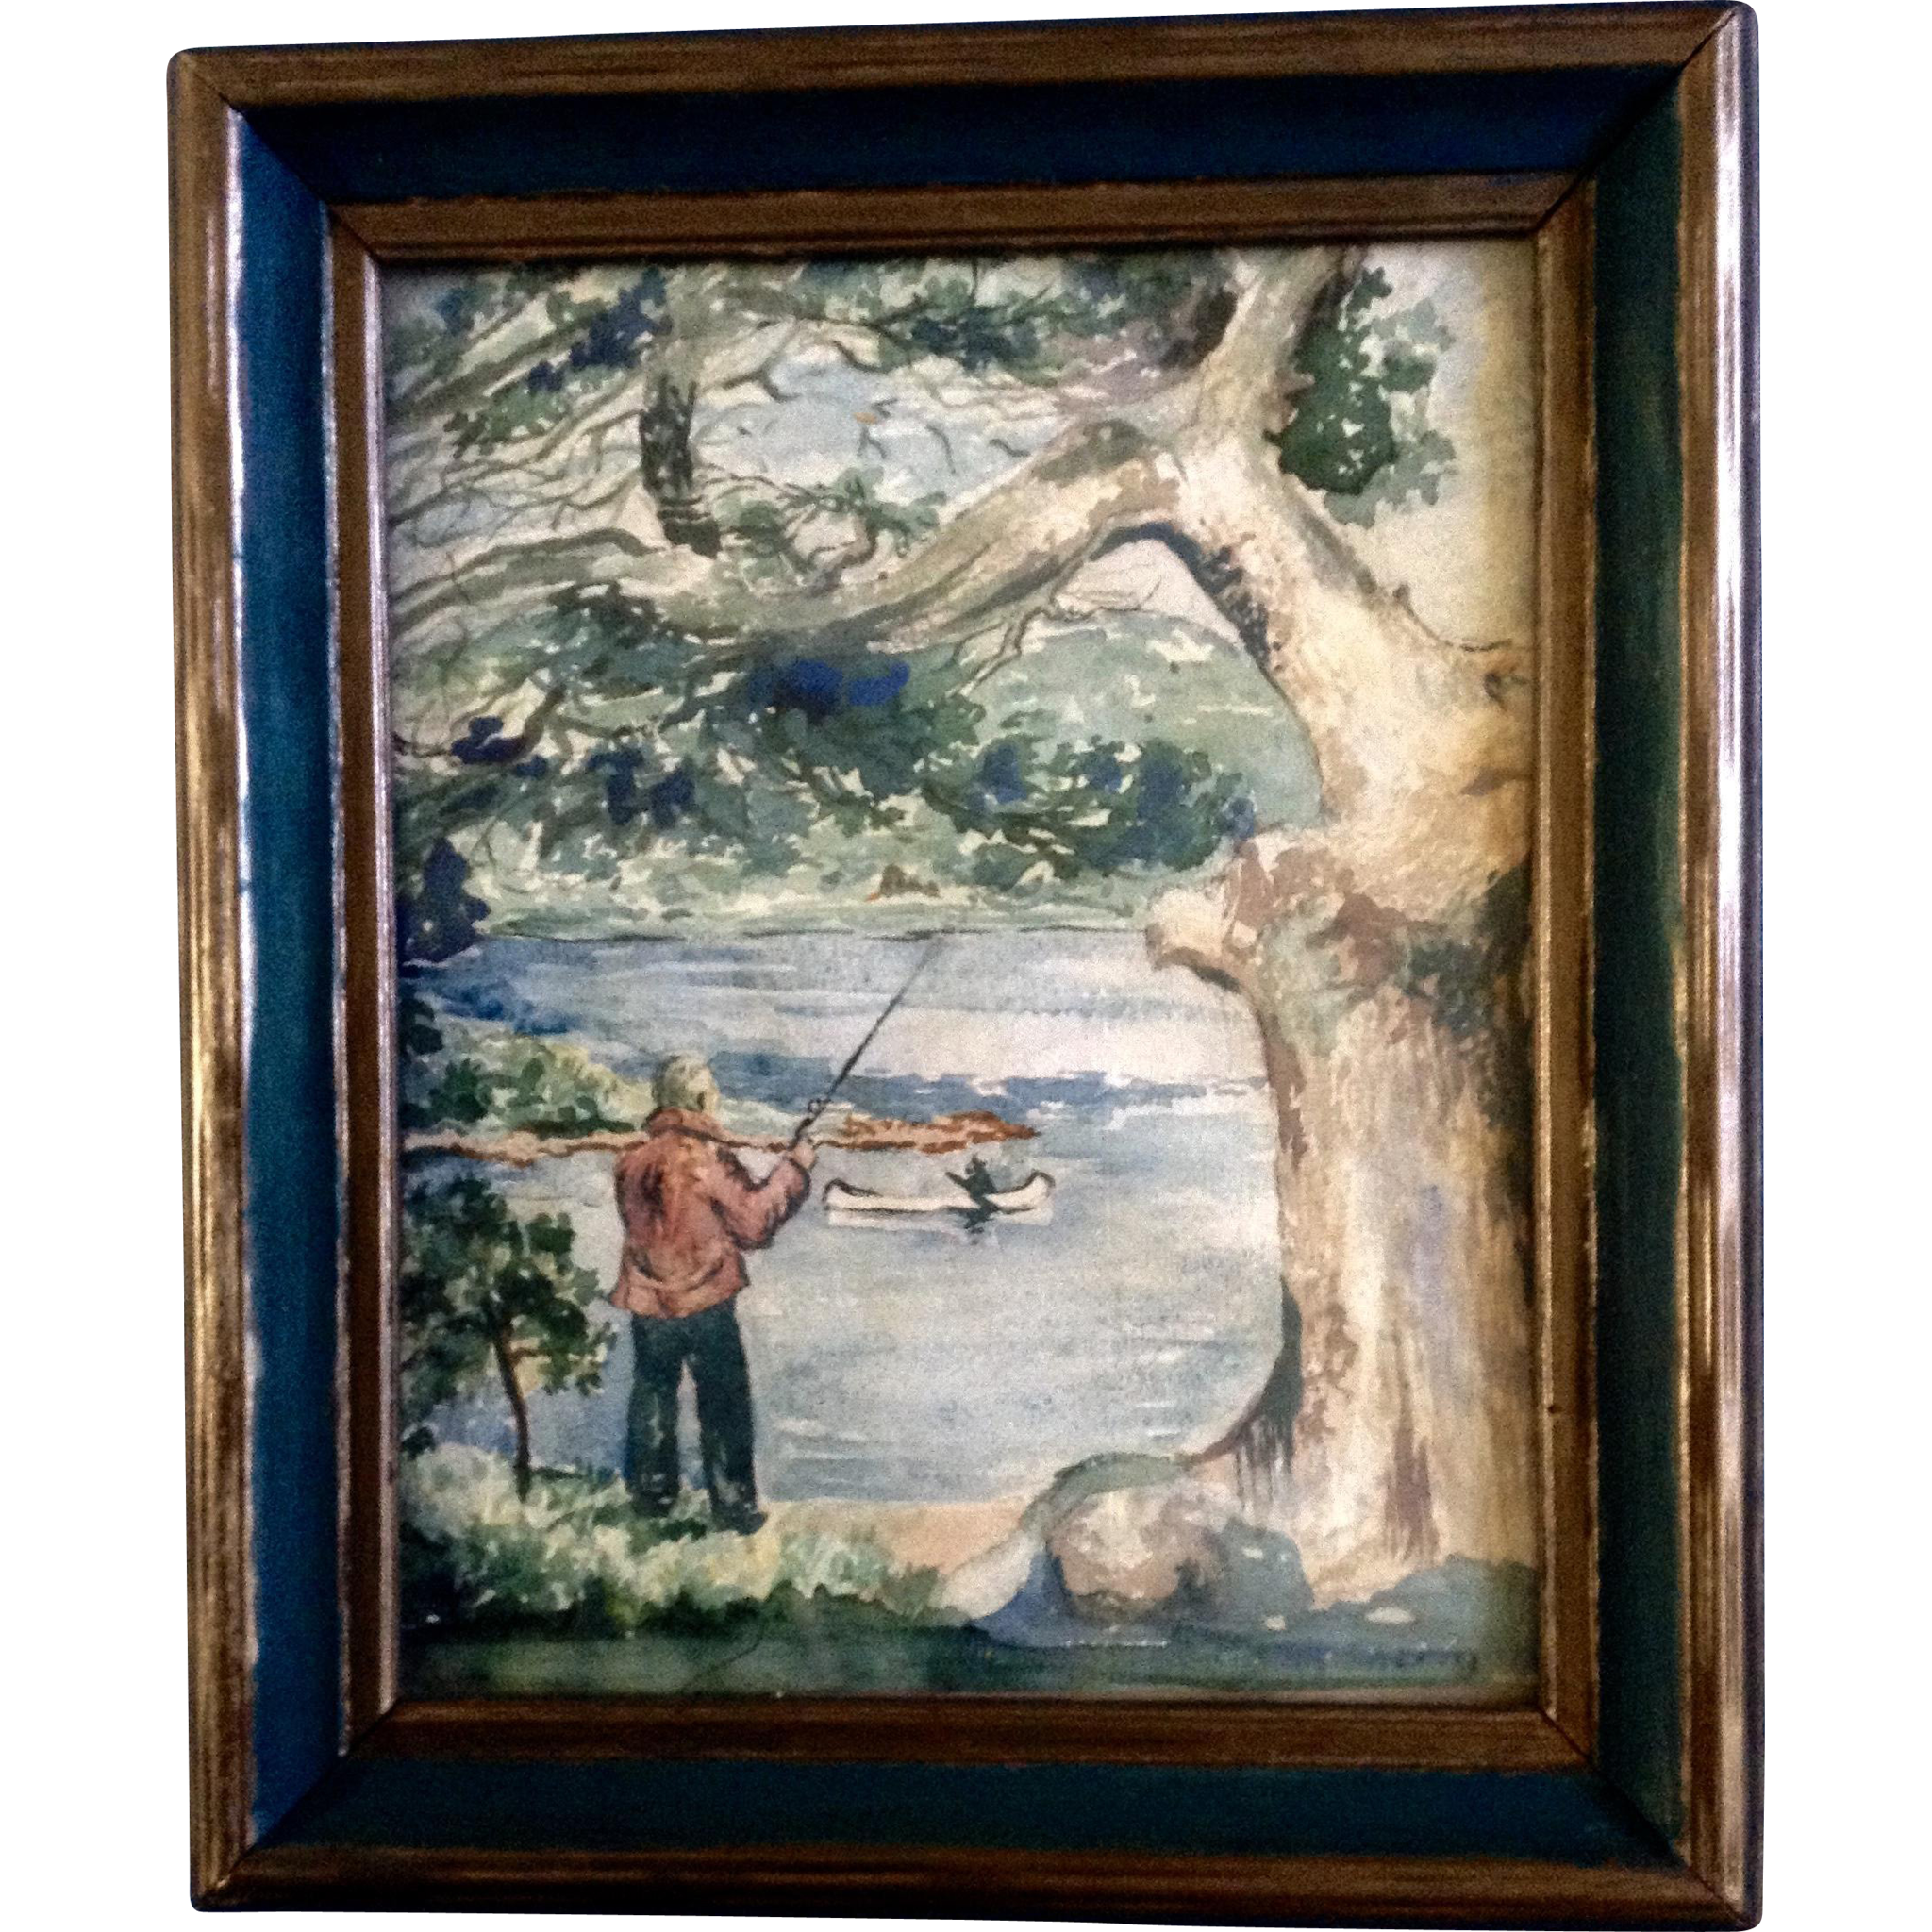 Connecticut watercolor artists directory - Sherman Fishing On The Riverbank Watercolor Painting 1930 S 1940 S Works On Paper Signed By Artist From The Estate Of Roy Donnelly Connecticut Usa